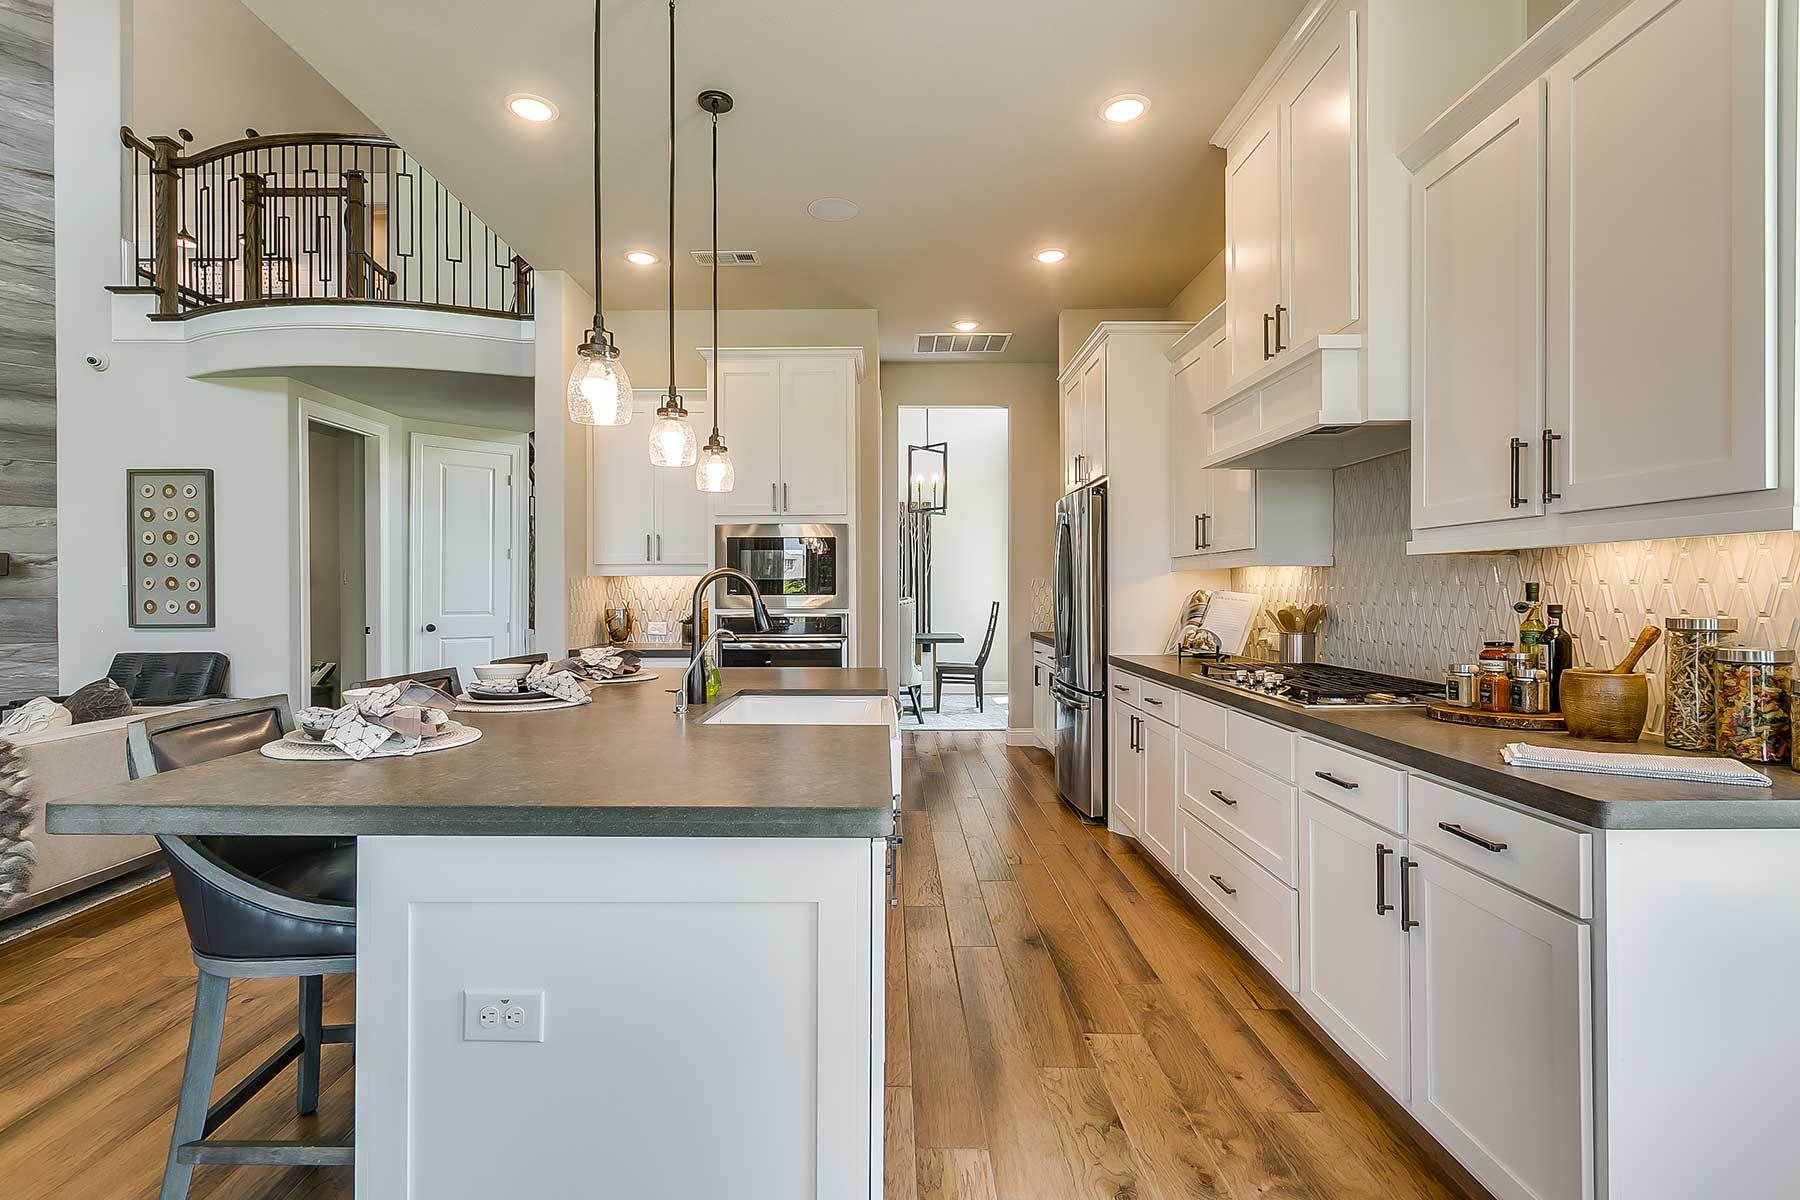 Kitchen featured in the Westridge By M/I Homes in Dallas, TX